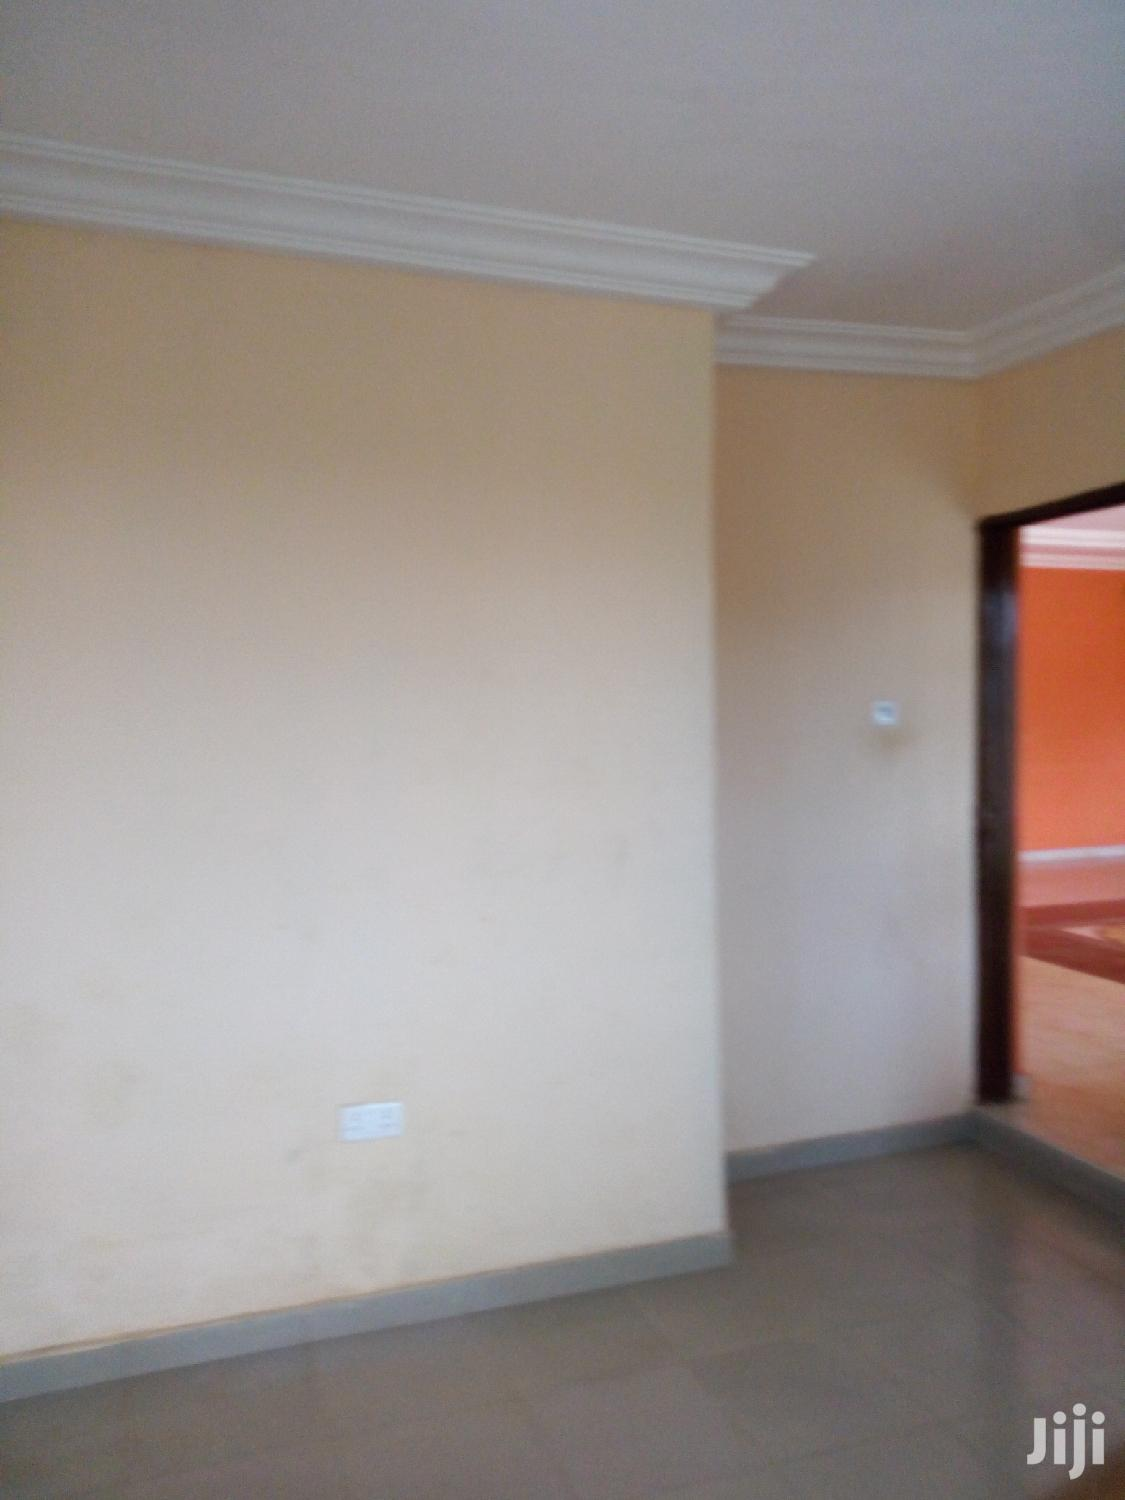 Two Bedroom For Rent At Pokoase Agja Helba | Houses & Apartments For Rent for sale in Achimota, Greater Accra, Ghana